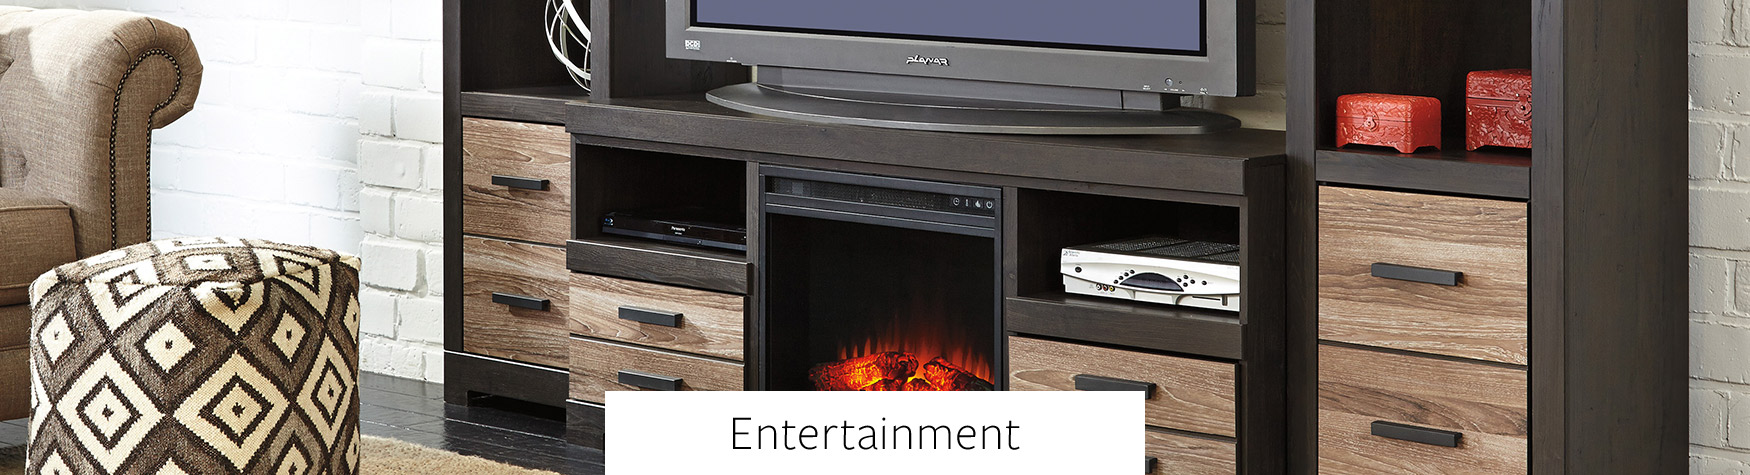 entertainment-banner.jpg